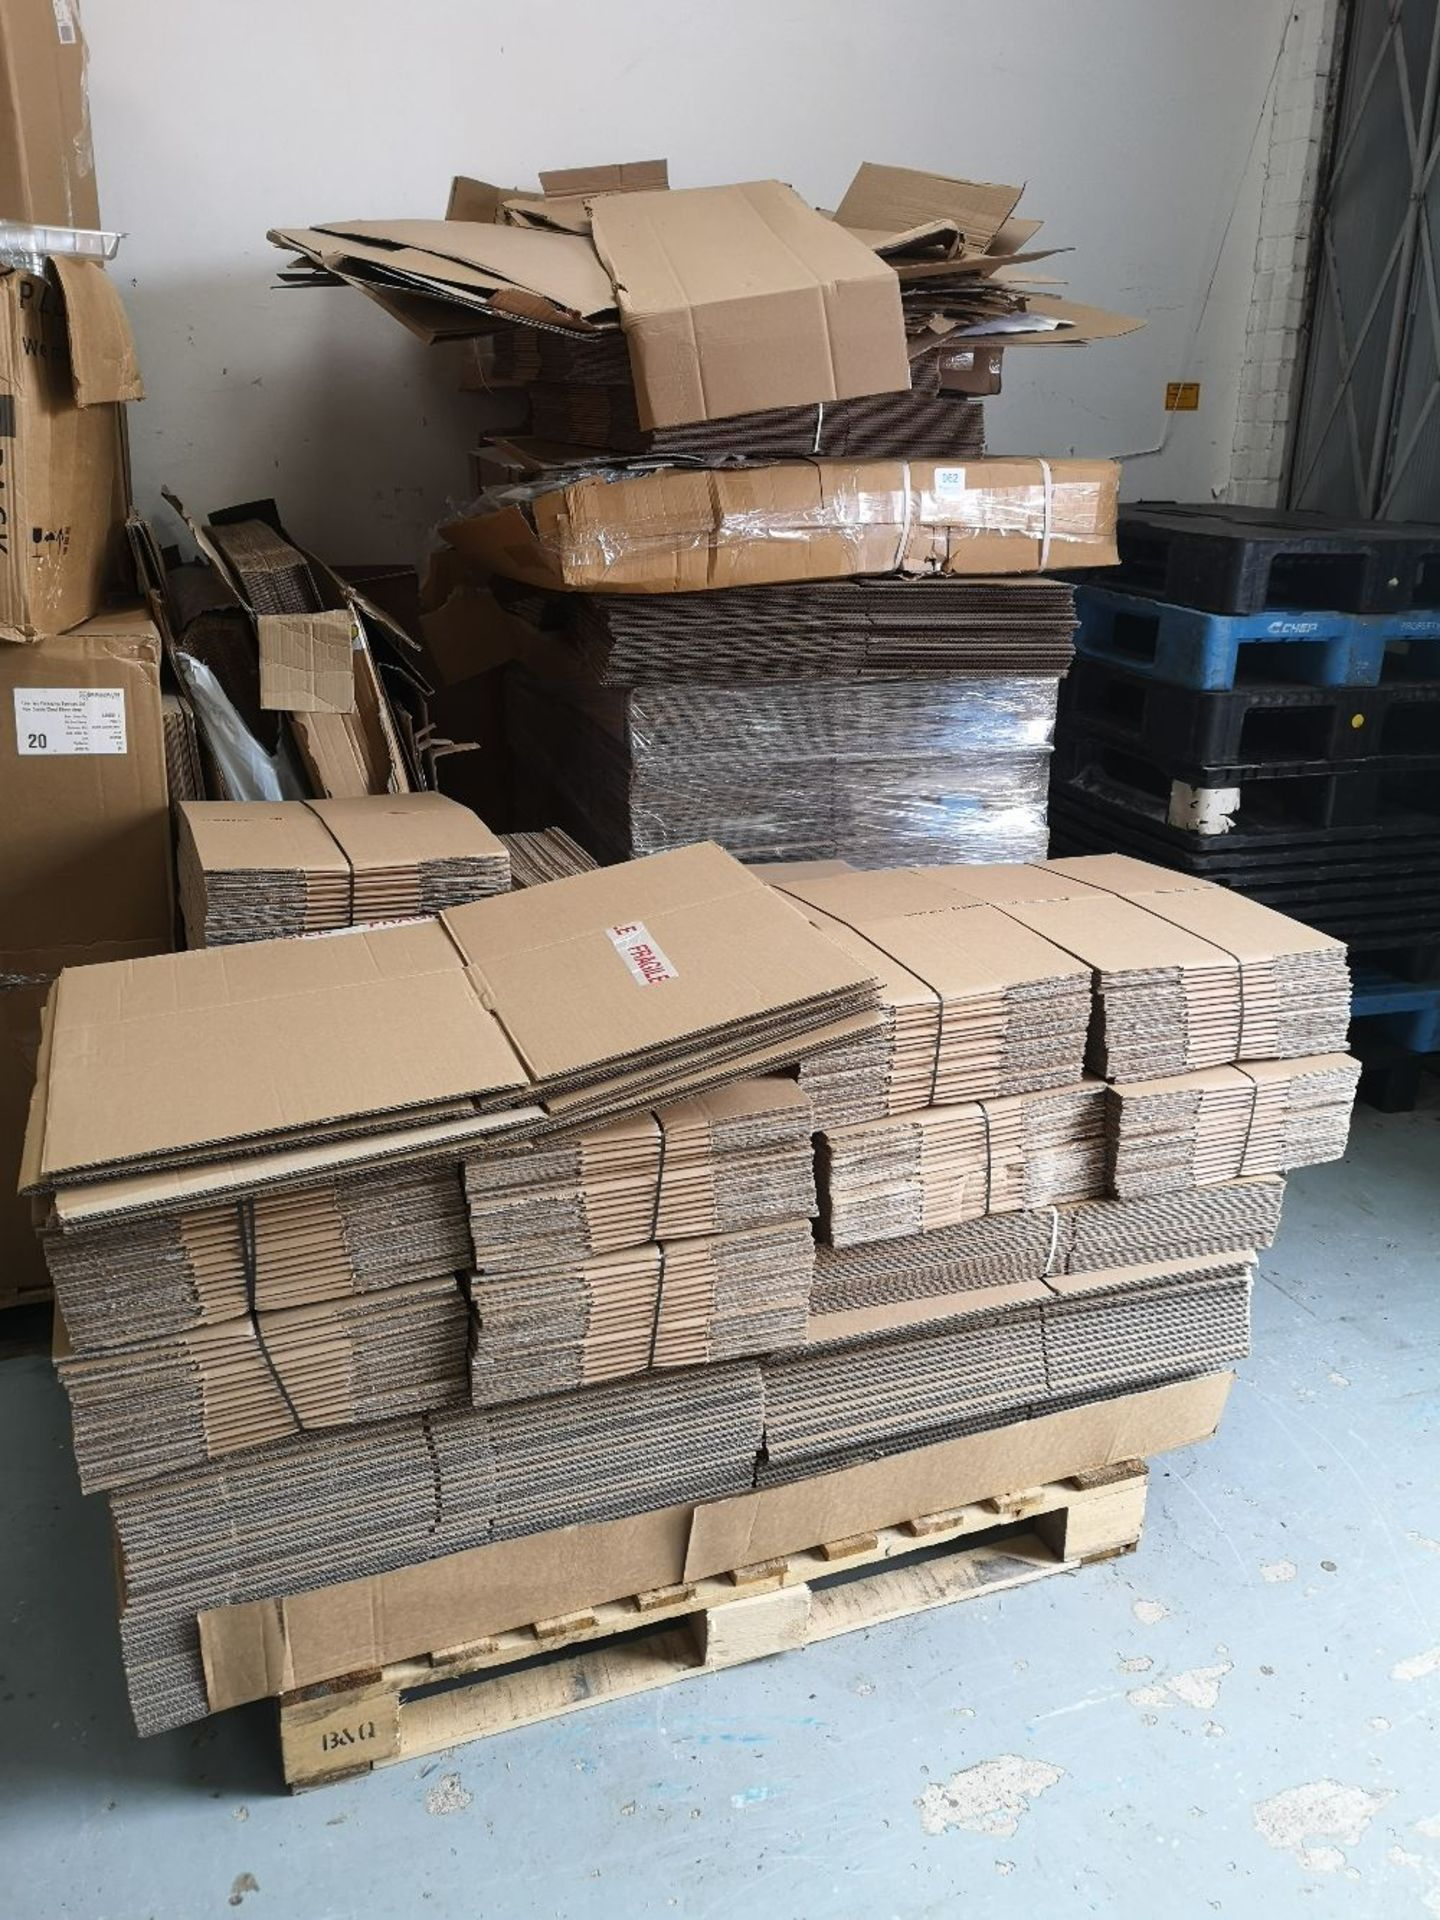 (2) Pallets of Various Sized Cardboard Boxes